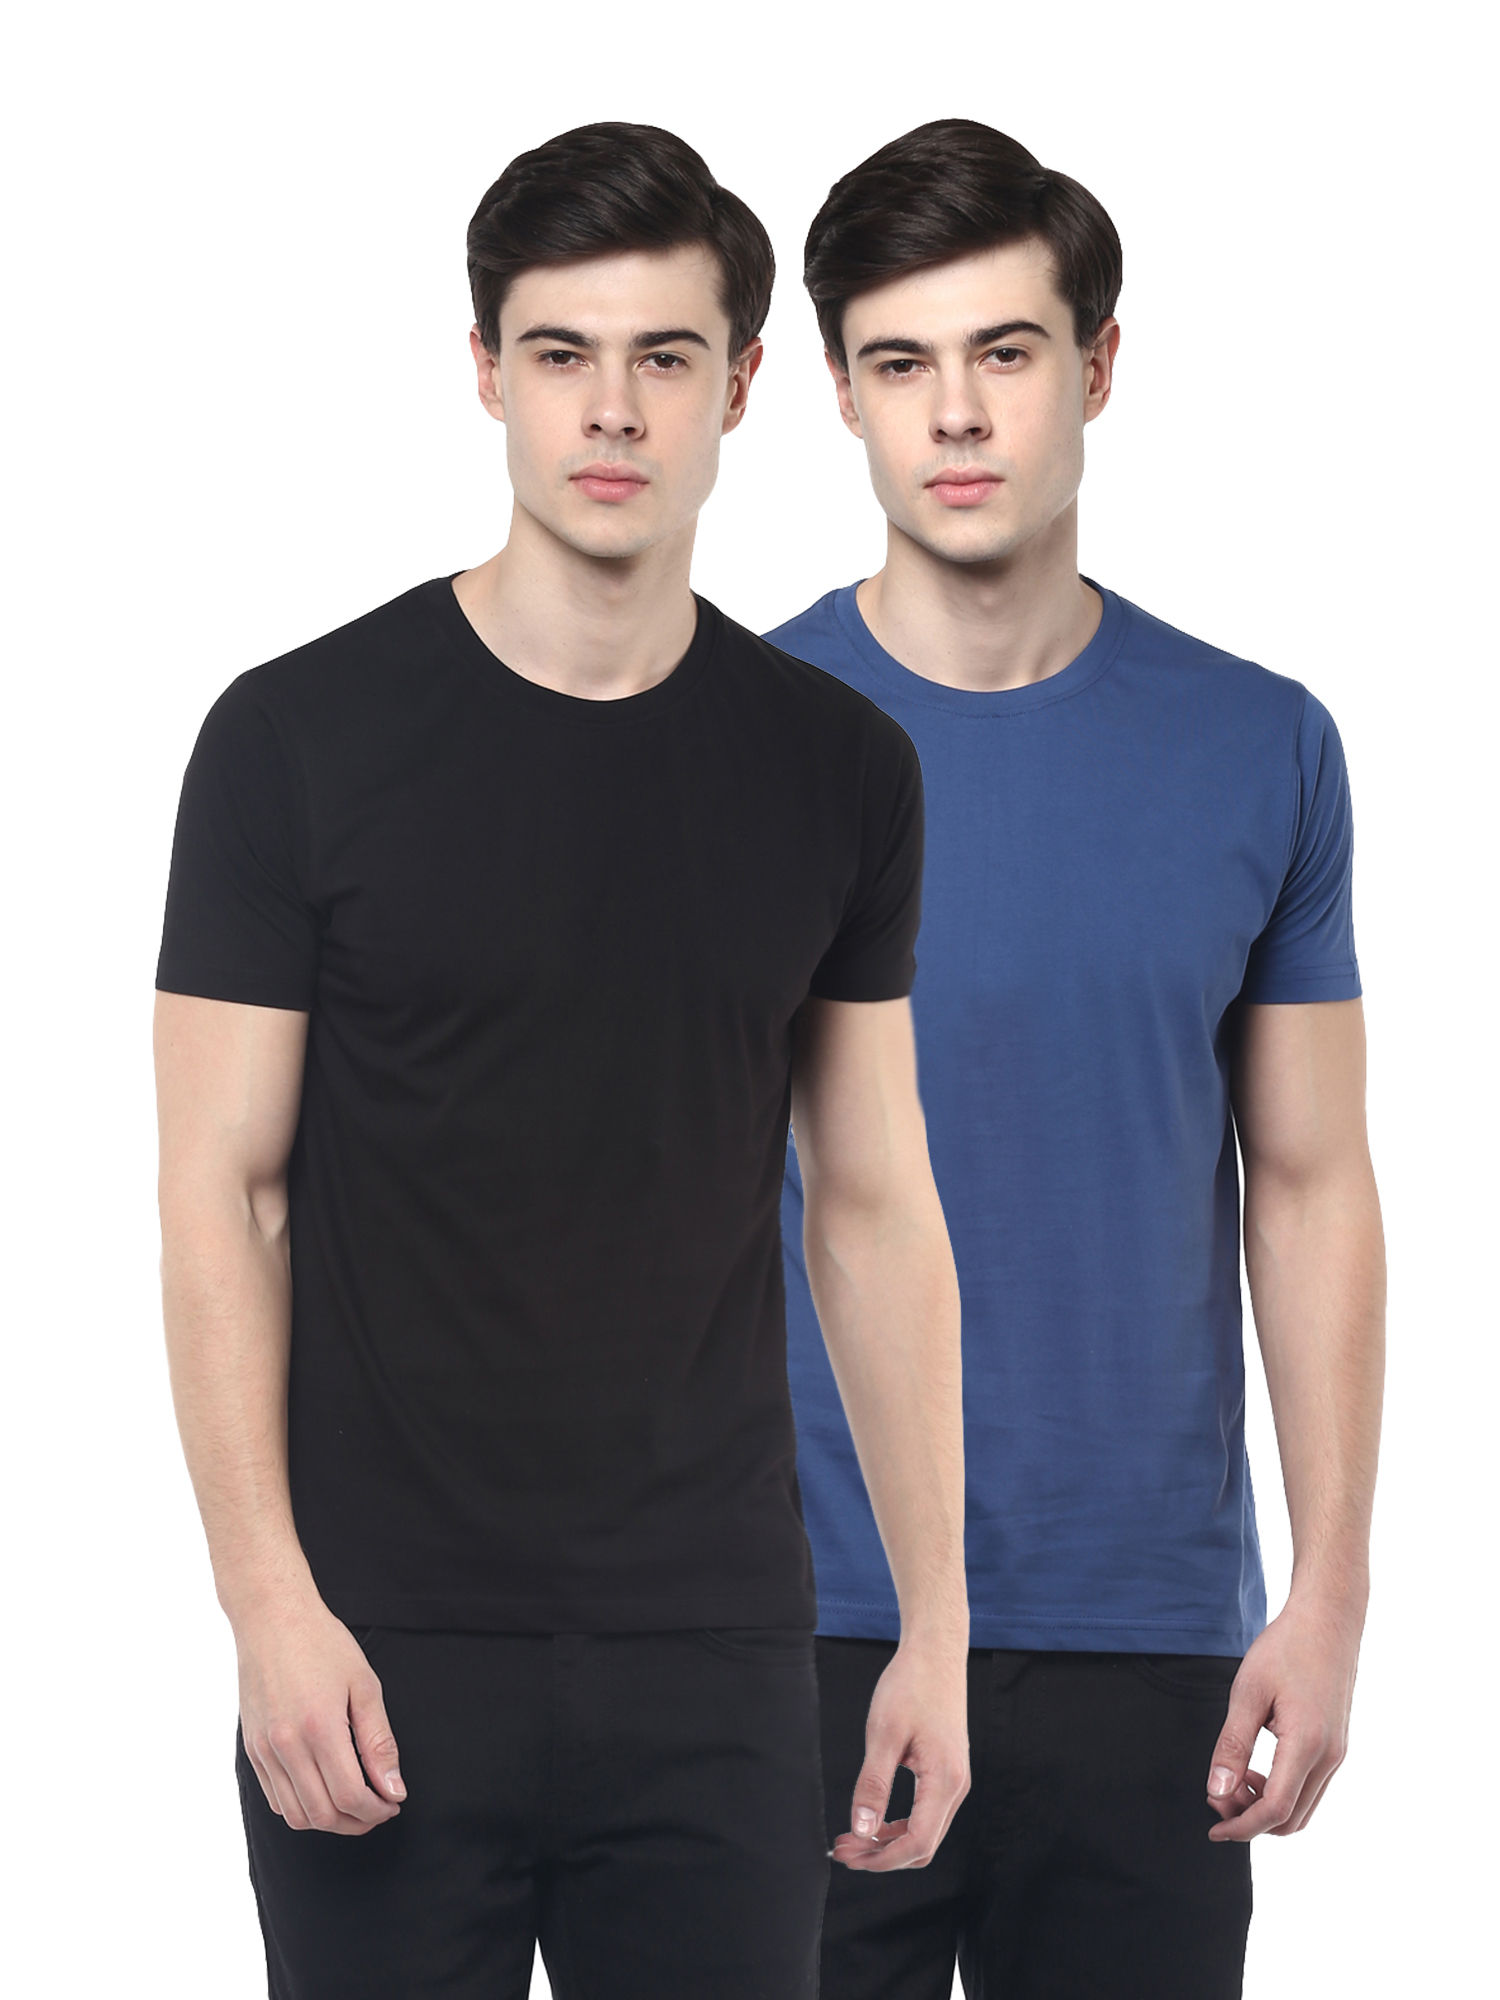 RECAST Solid Blue & Black Round Neck Half Sleeve T-Shirt (Pack of 2)